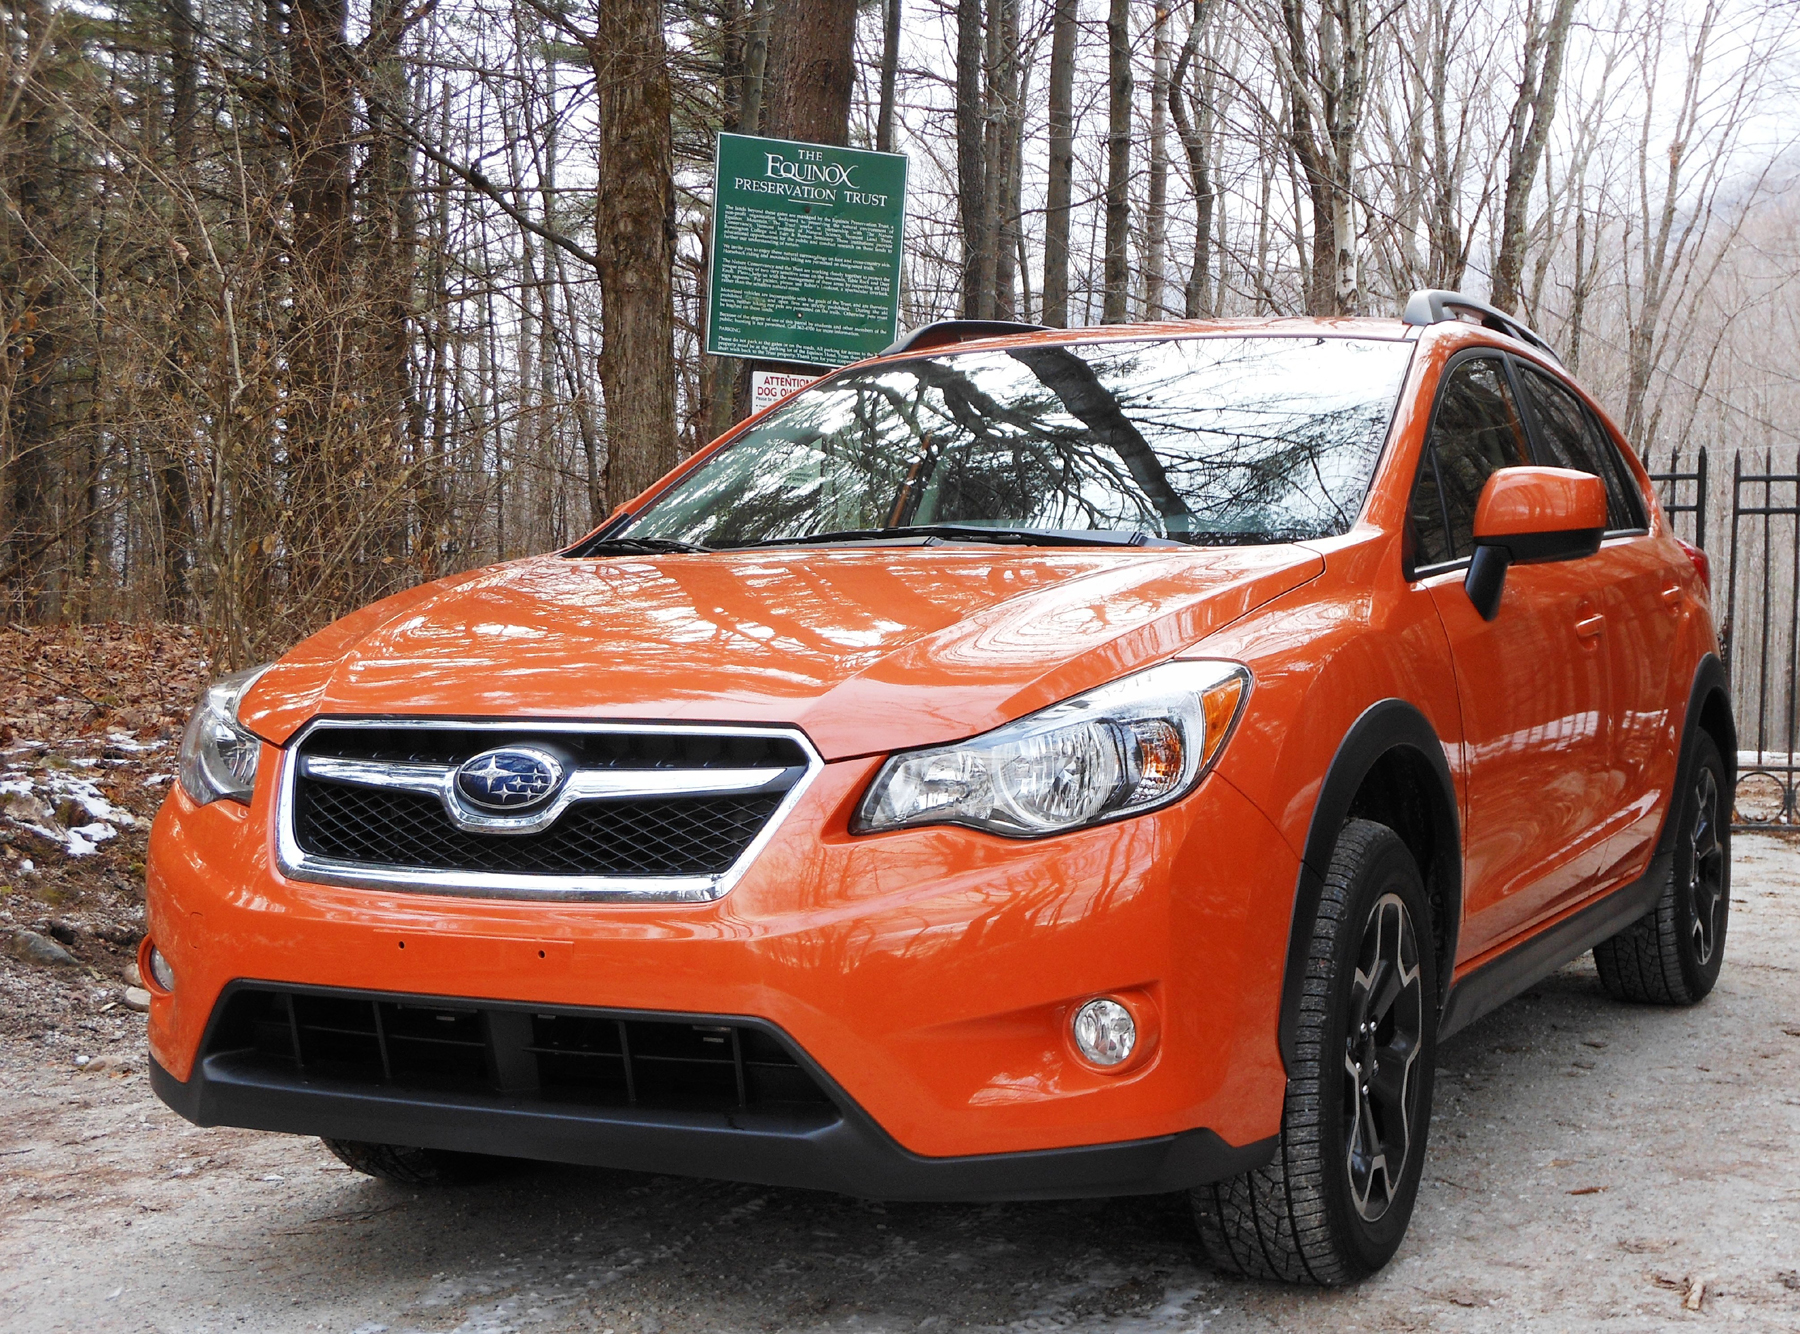 2013 xv crosstrek replaces subaru outback sport down the road groovecar. Black Bedroom Furniture Sets. Home Design Ideas